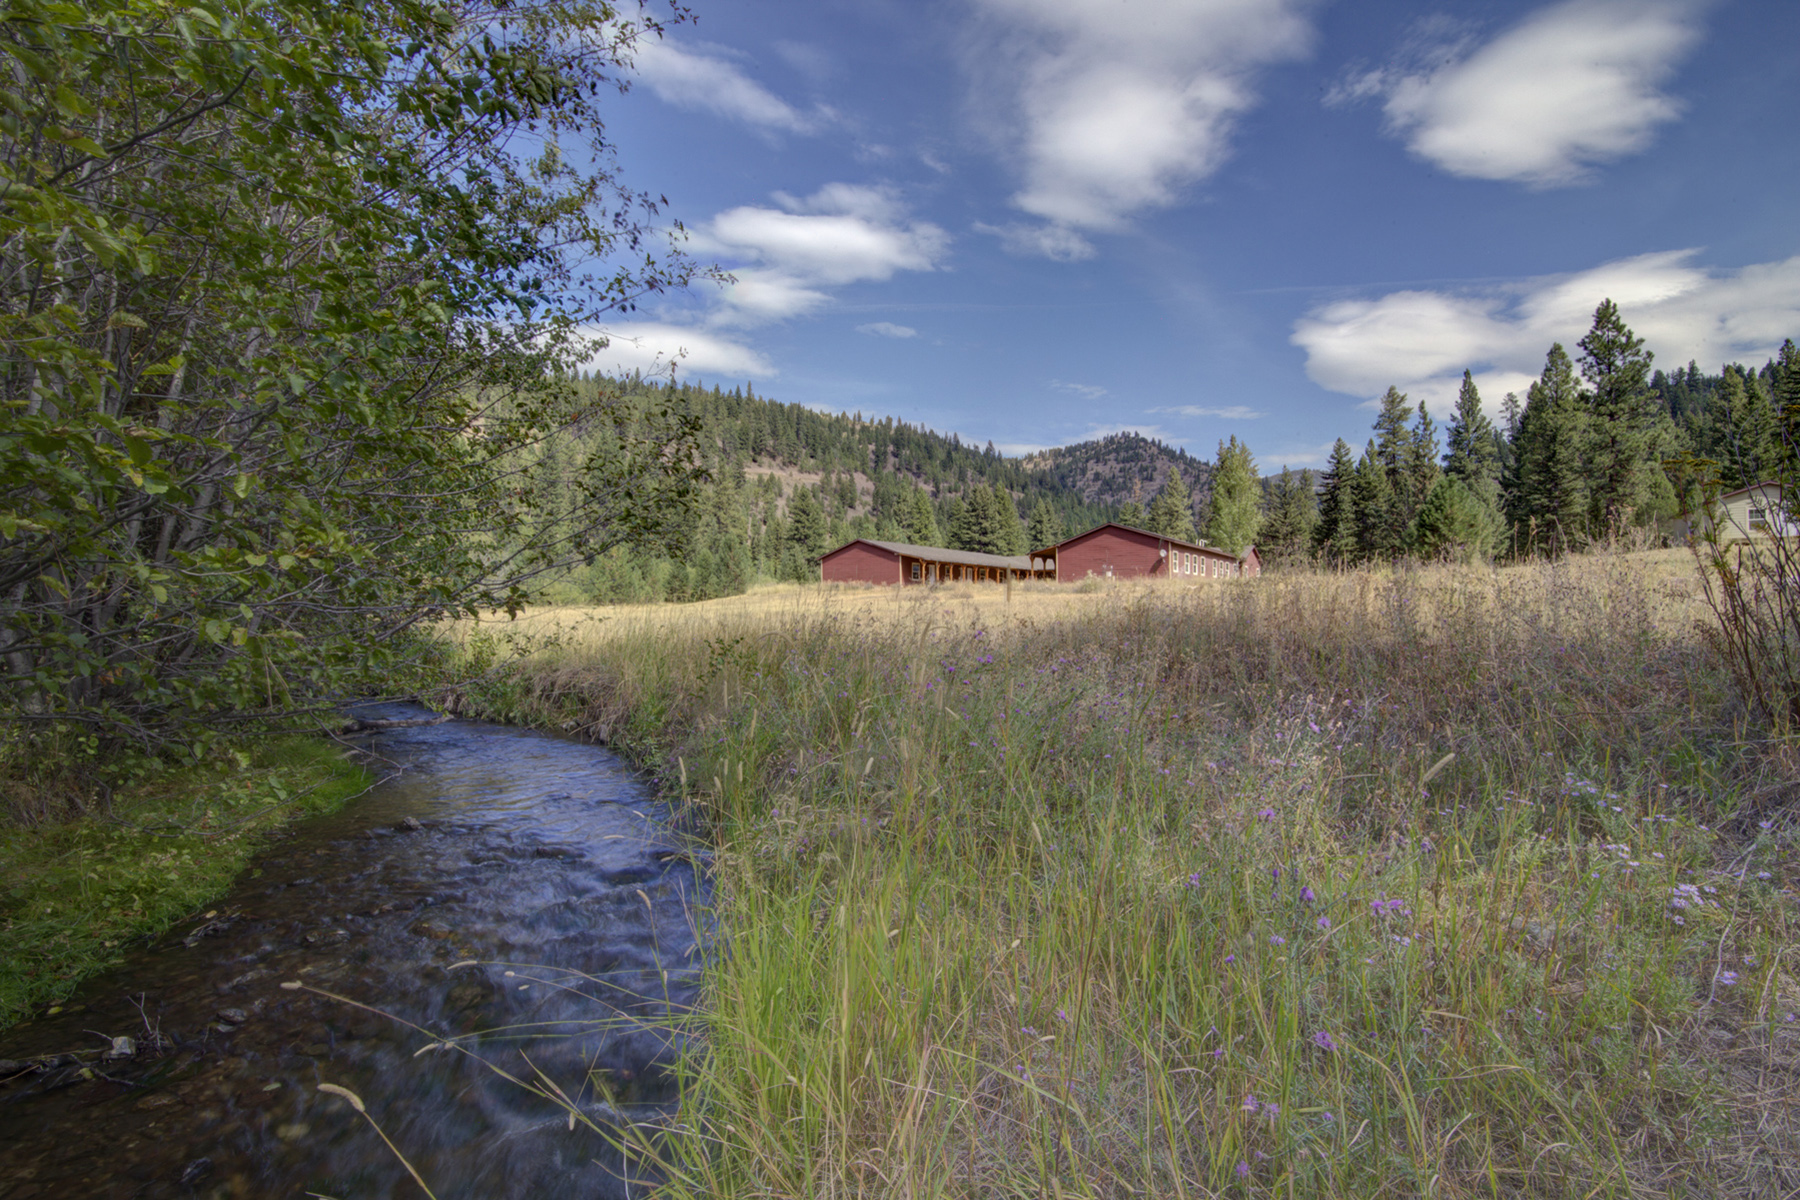 Single Family Home for Sale at 12500 Cramer Creek Rd , Clinton, MT 59825 12500 Cramer Creek Rd Clinton, Montana, 59825 United States